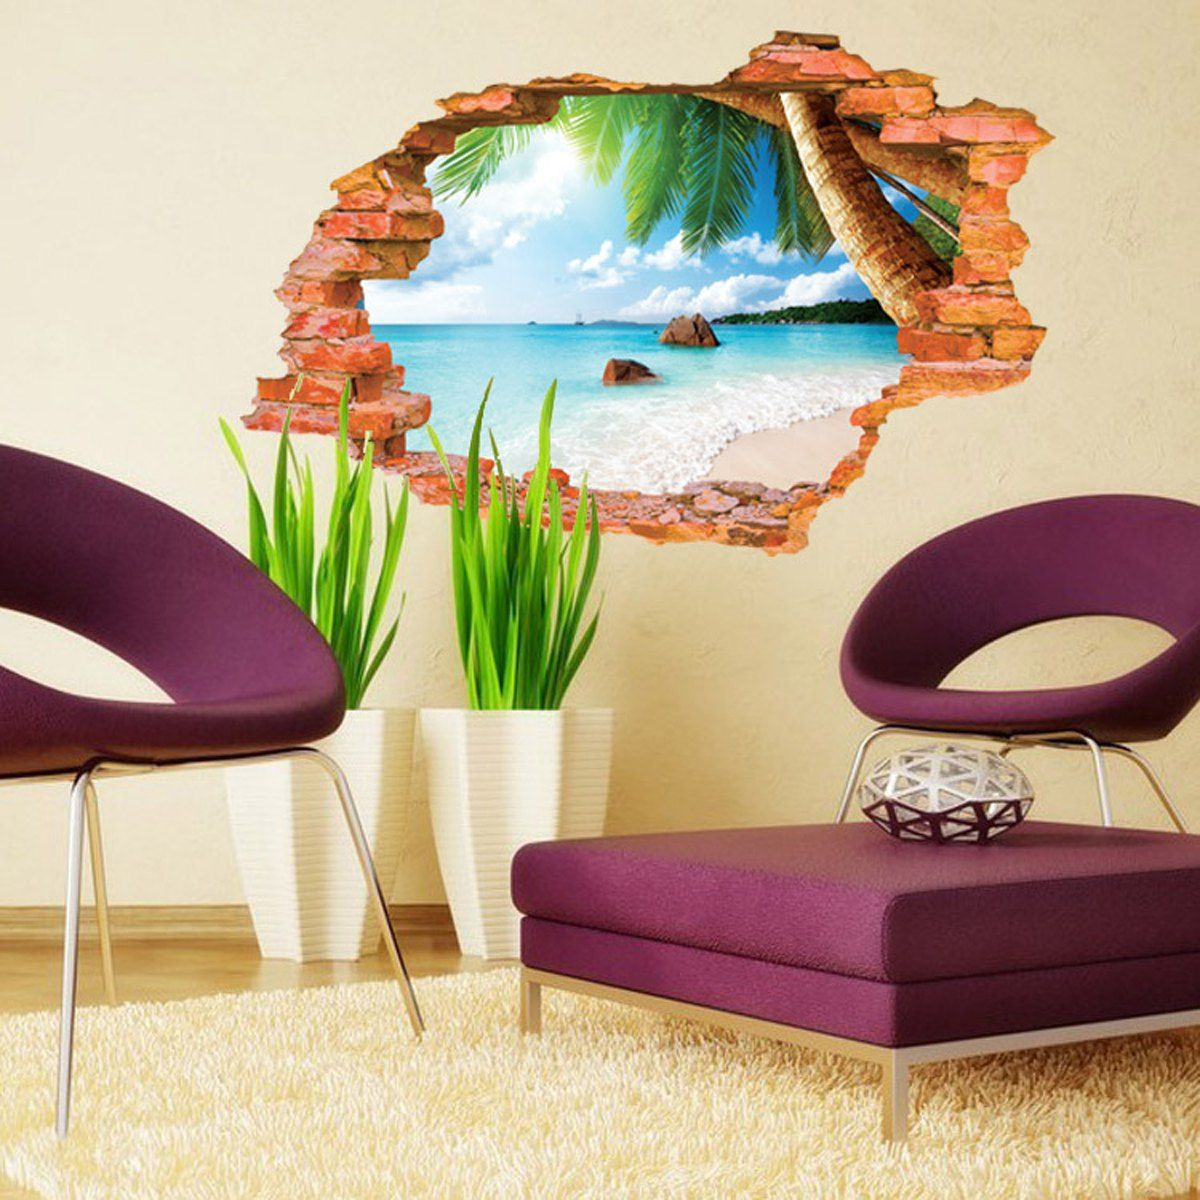 D Beach Style Creative Wall Sticker Removable Wallpaper Water - Wall decals like wallpaper